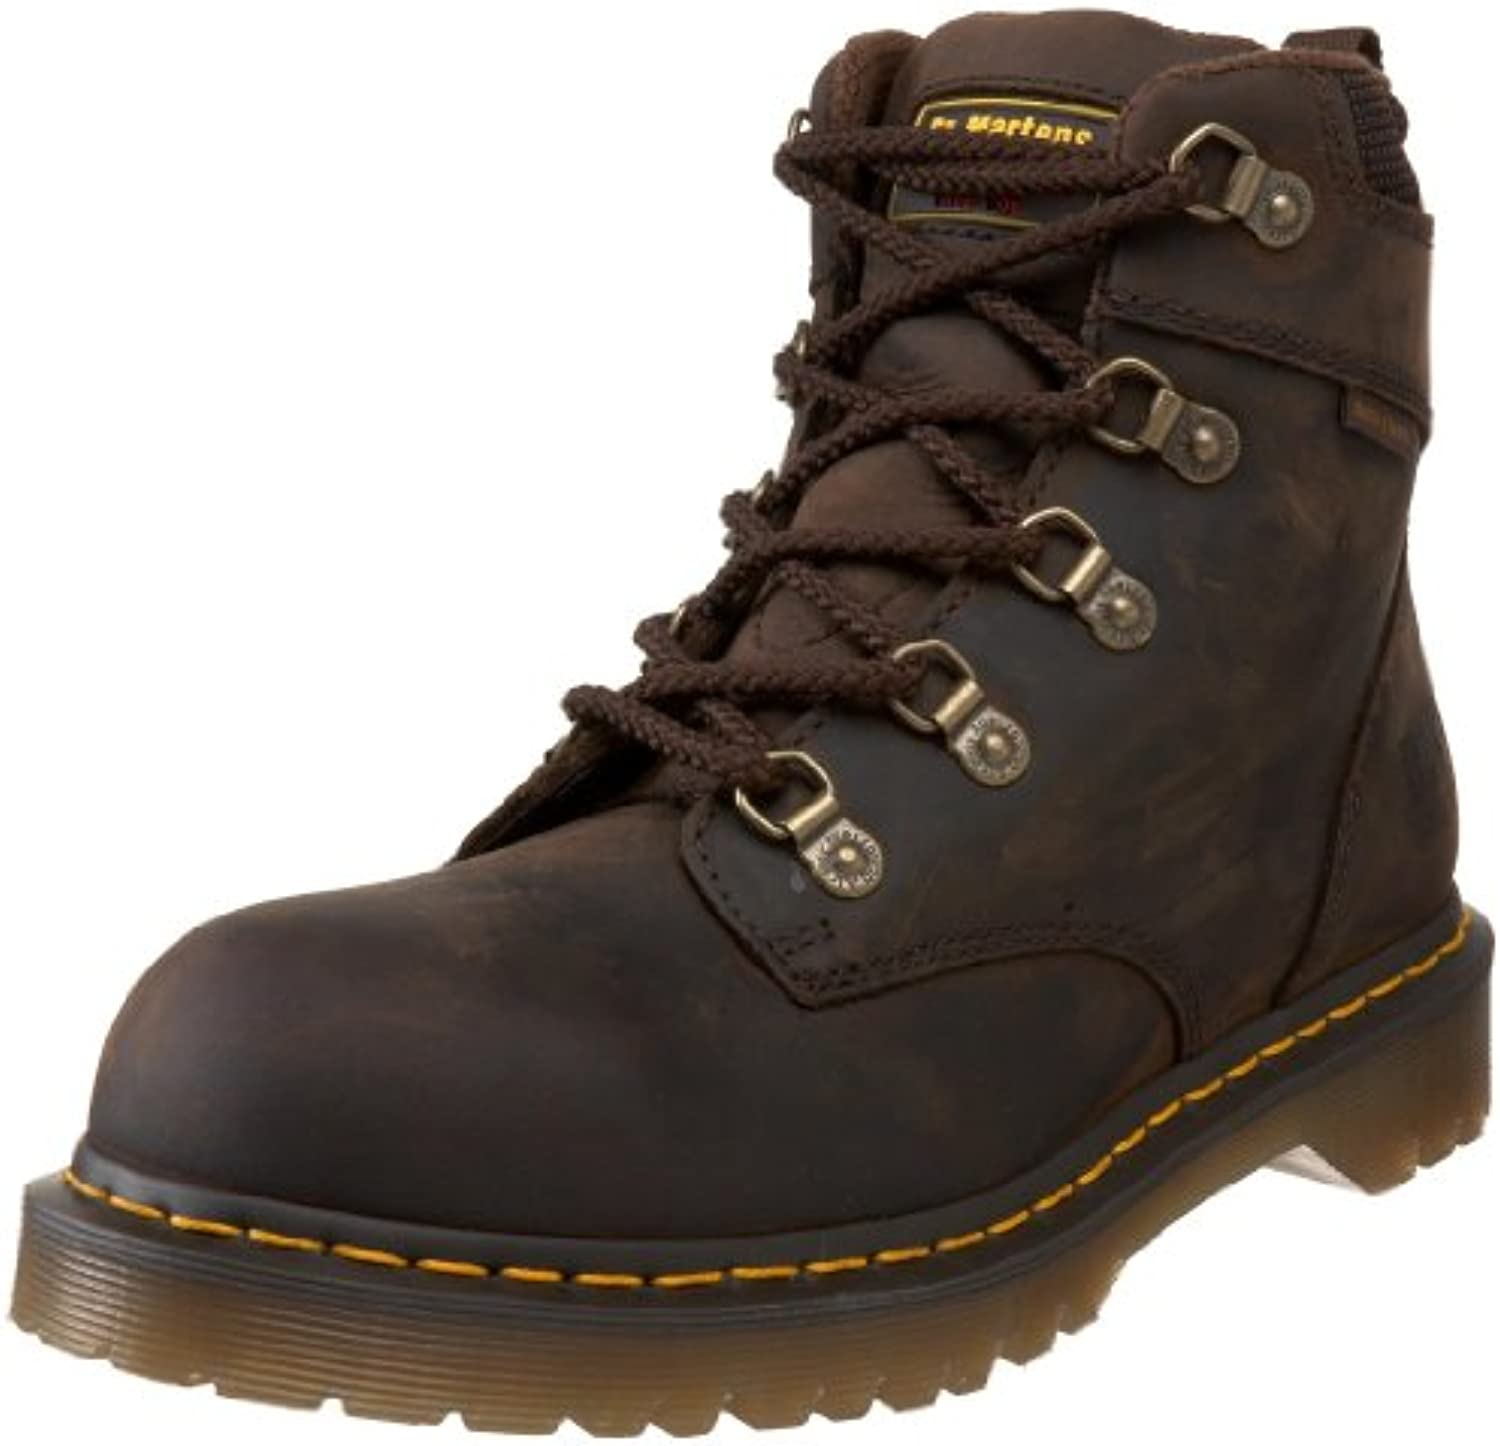 Dr. Martens Holkham Steel Toe Hiker Gaucho 10 UK/12 M US Women's/11 M US Men's